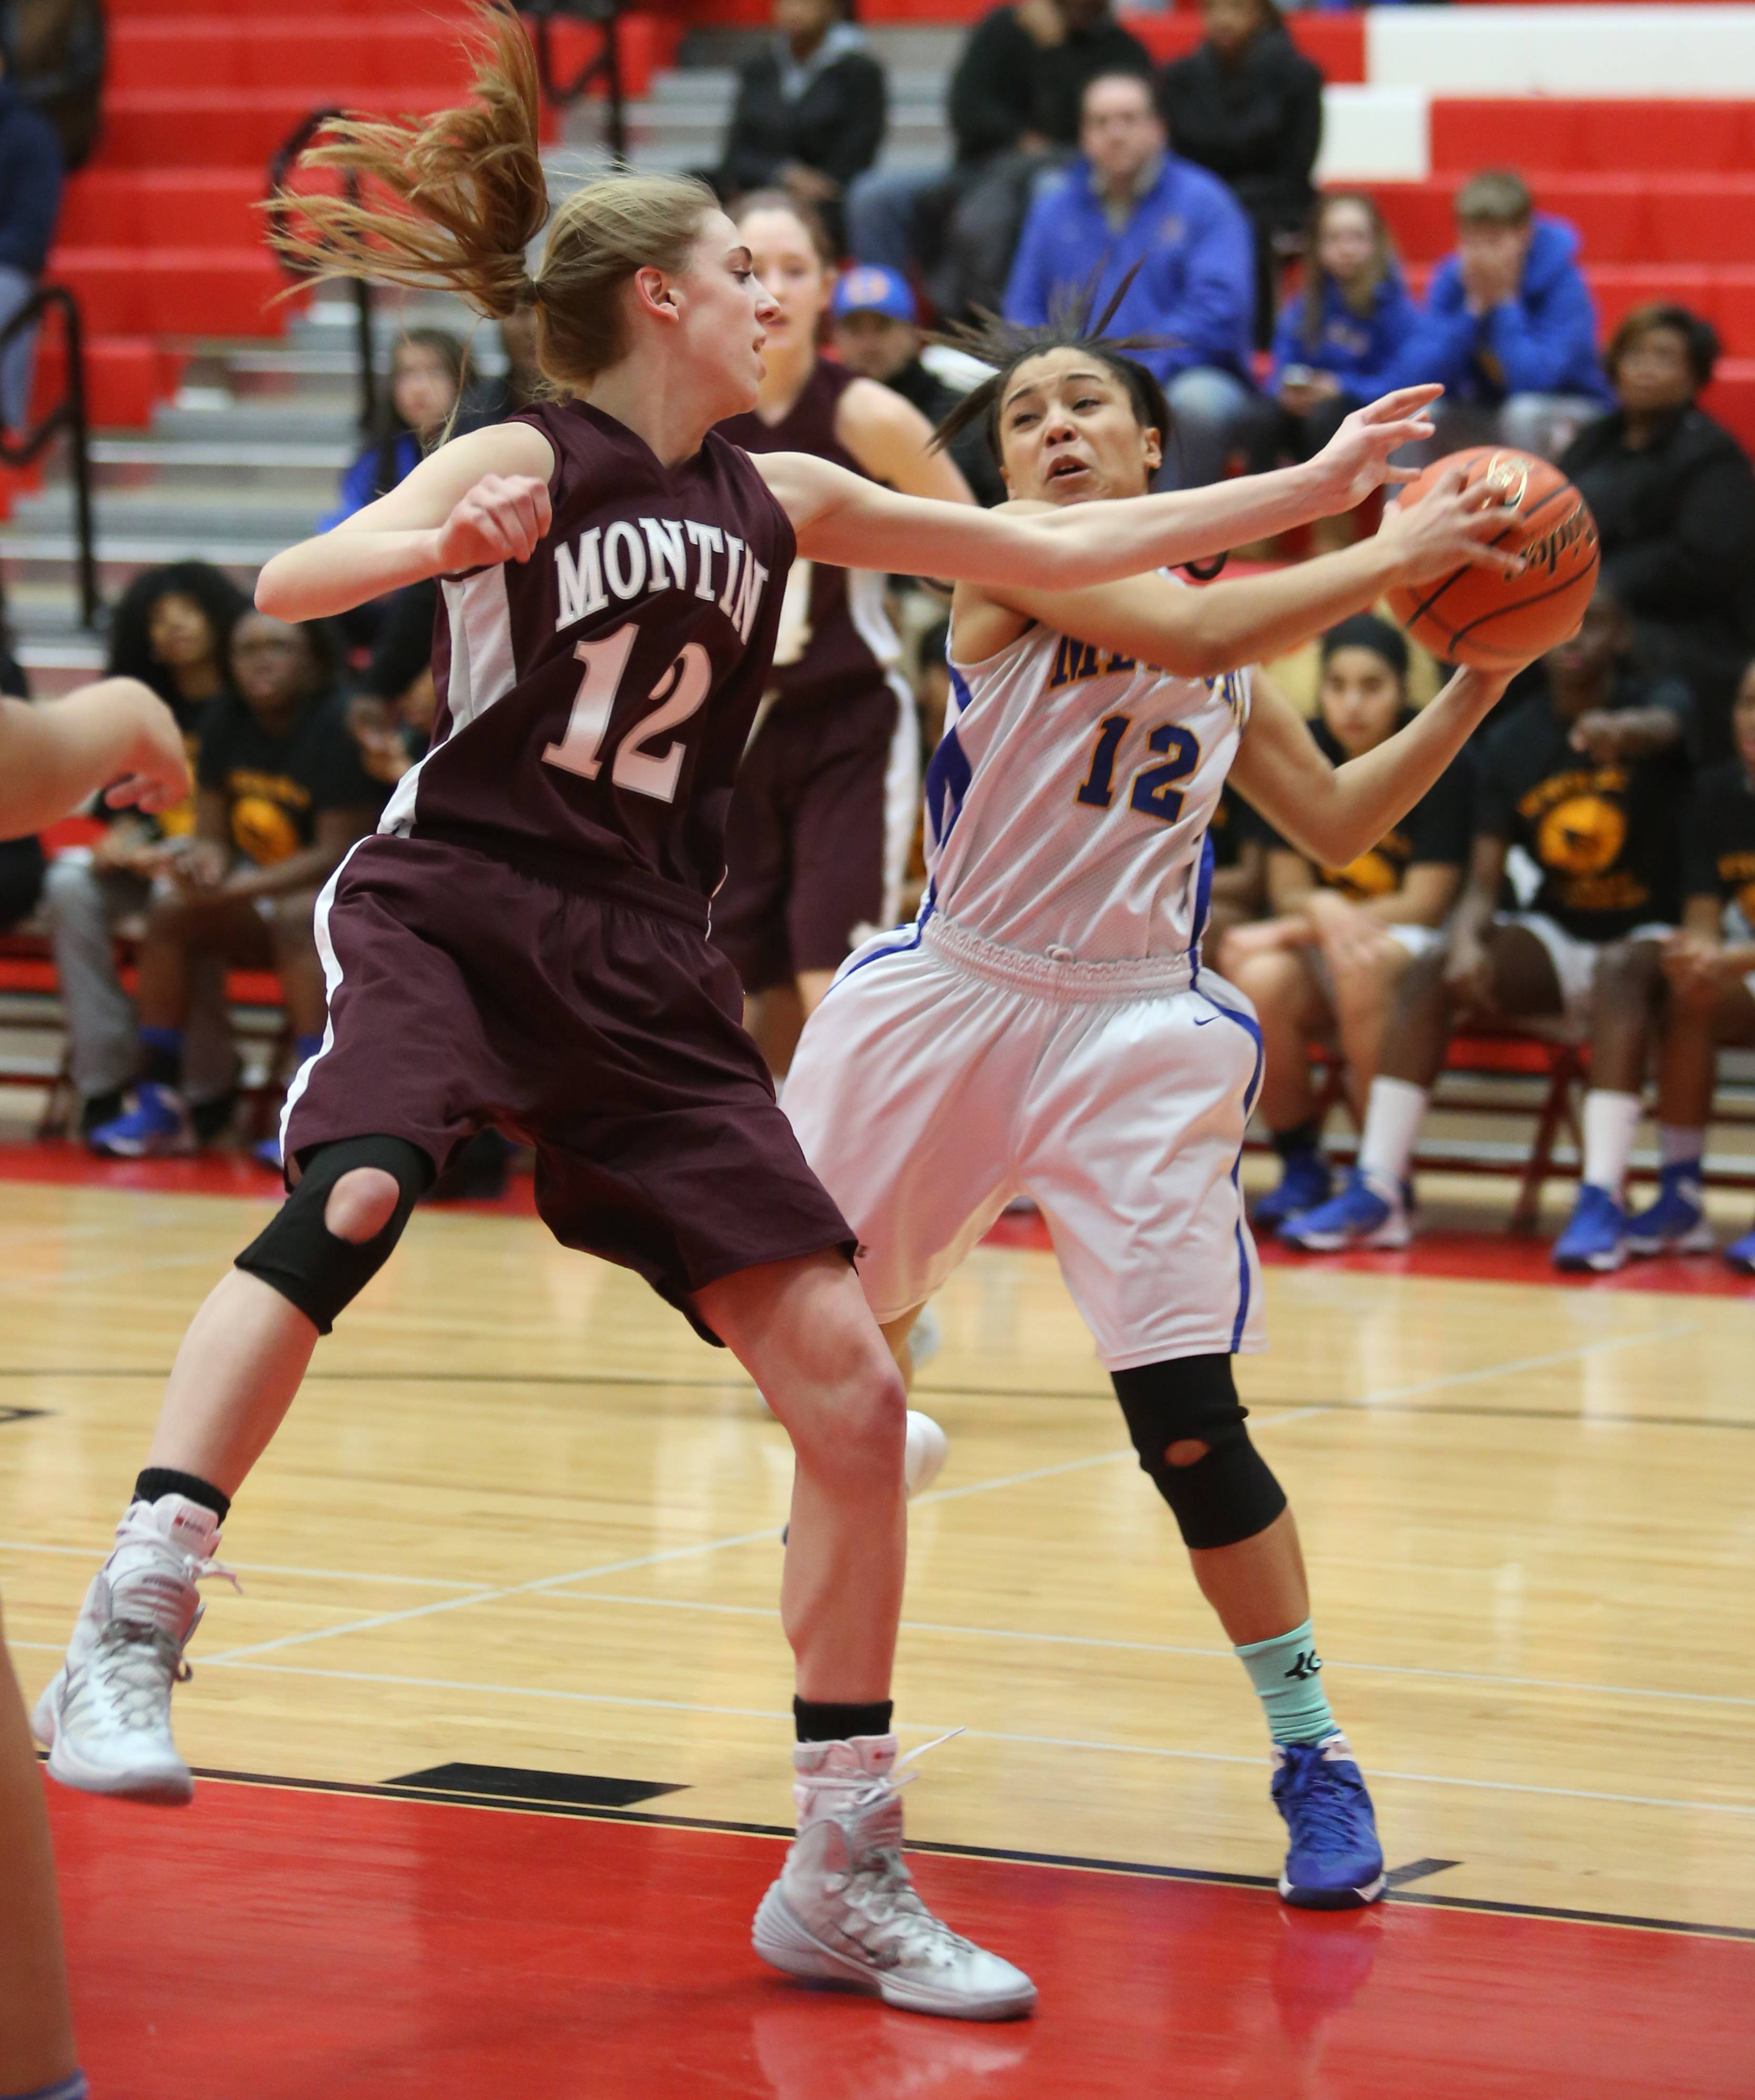 Montini played De La Salle in Class 3A girls basketball supersectional action at Hinsdale Central, Monday, March 3.